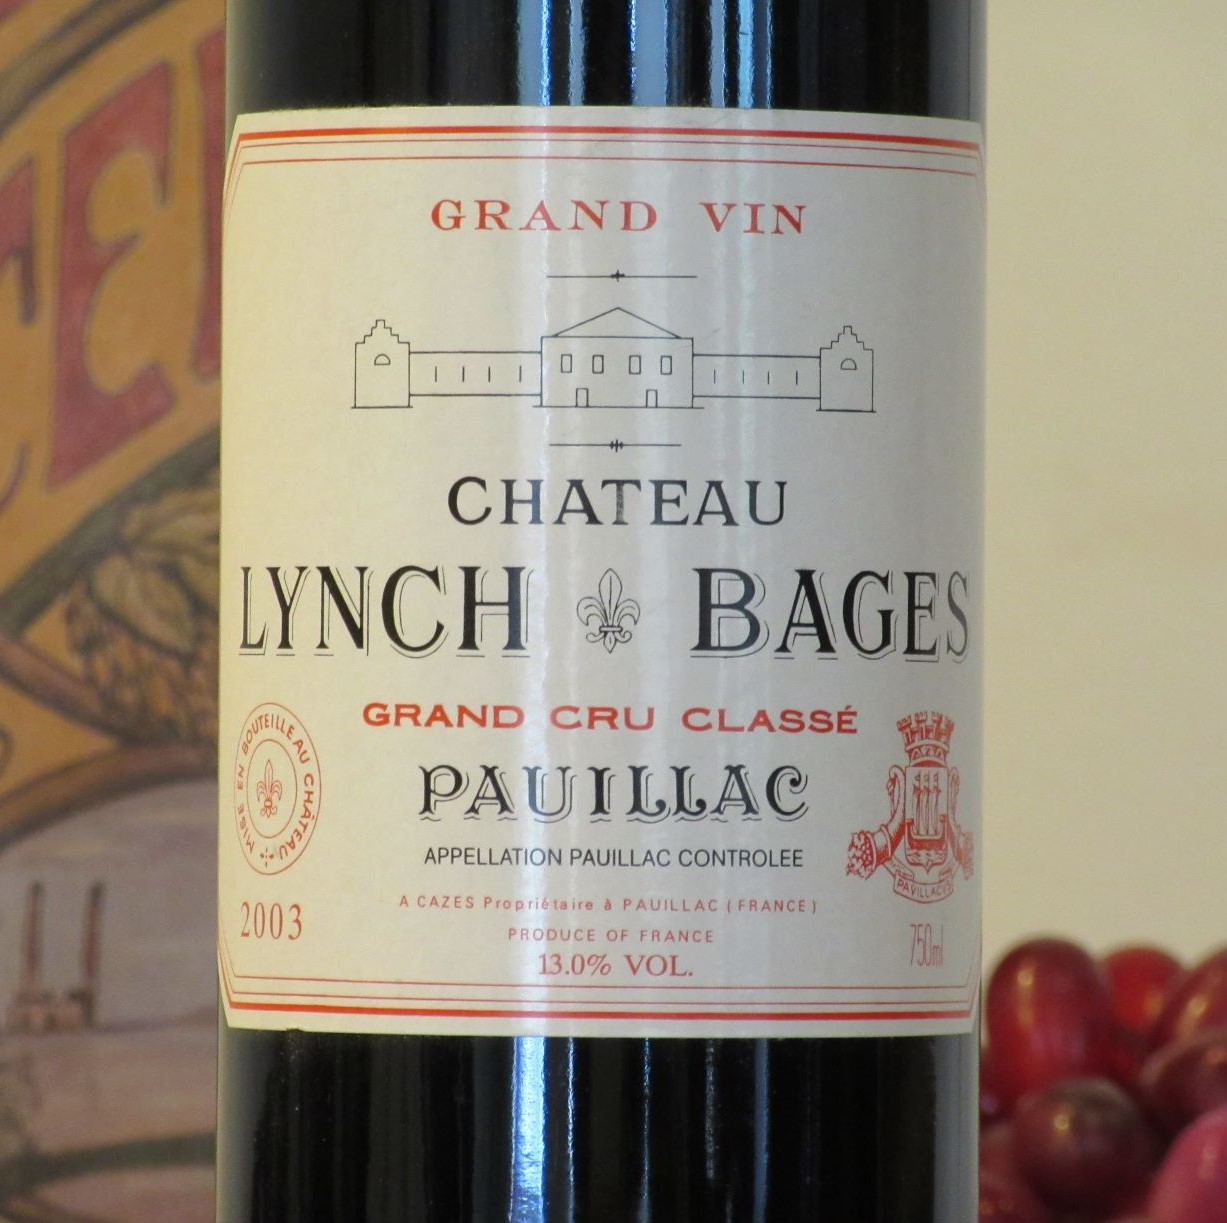 Chateau Lynch Bages Pauillac 2003